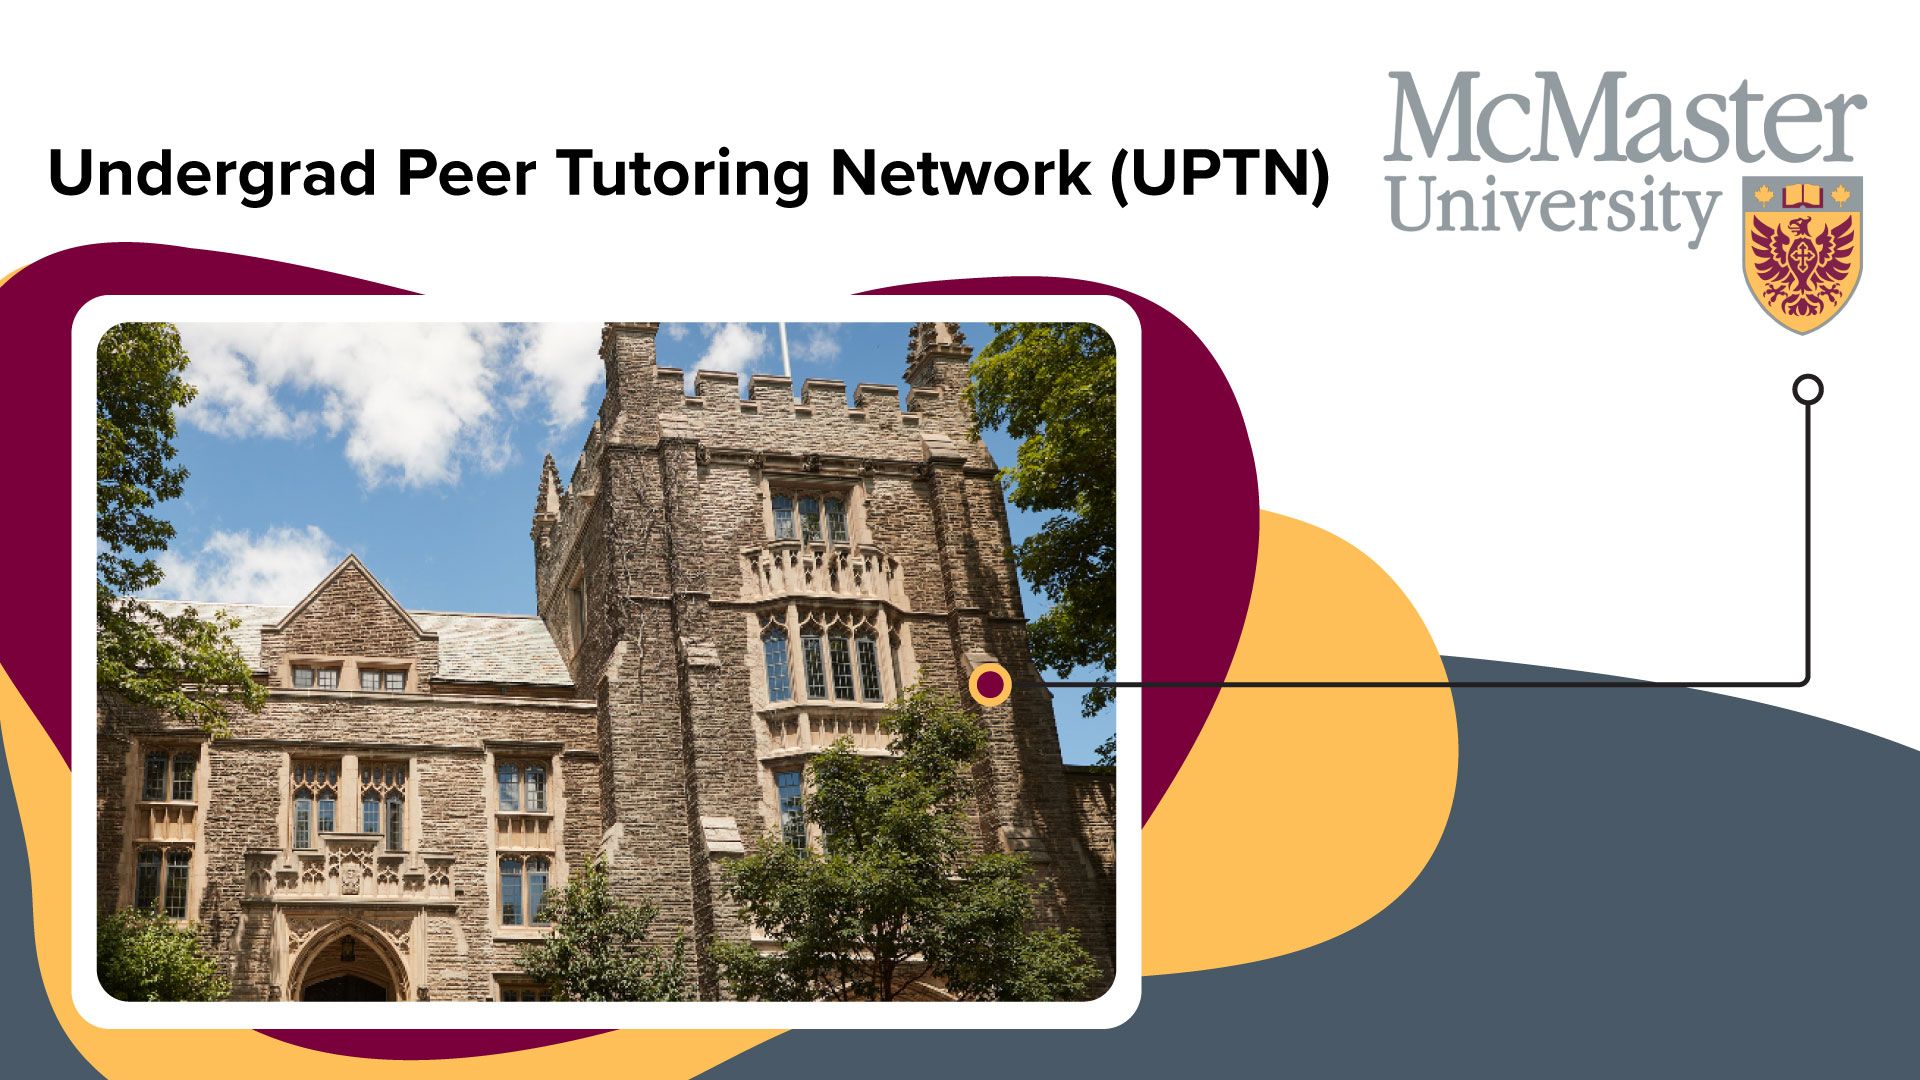 McMaster University | Top-ranking research university adopts a streamlined peer tutoring management system